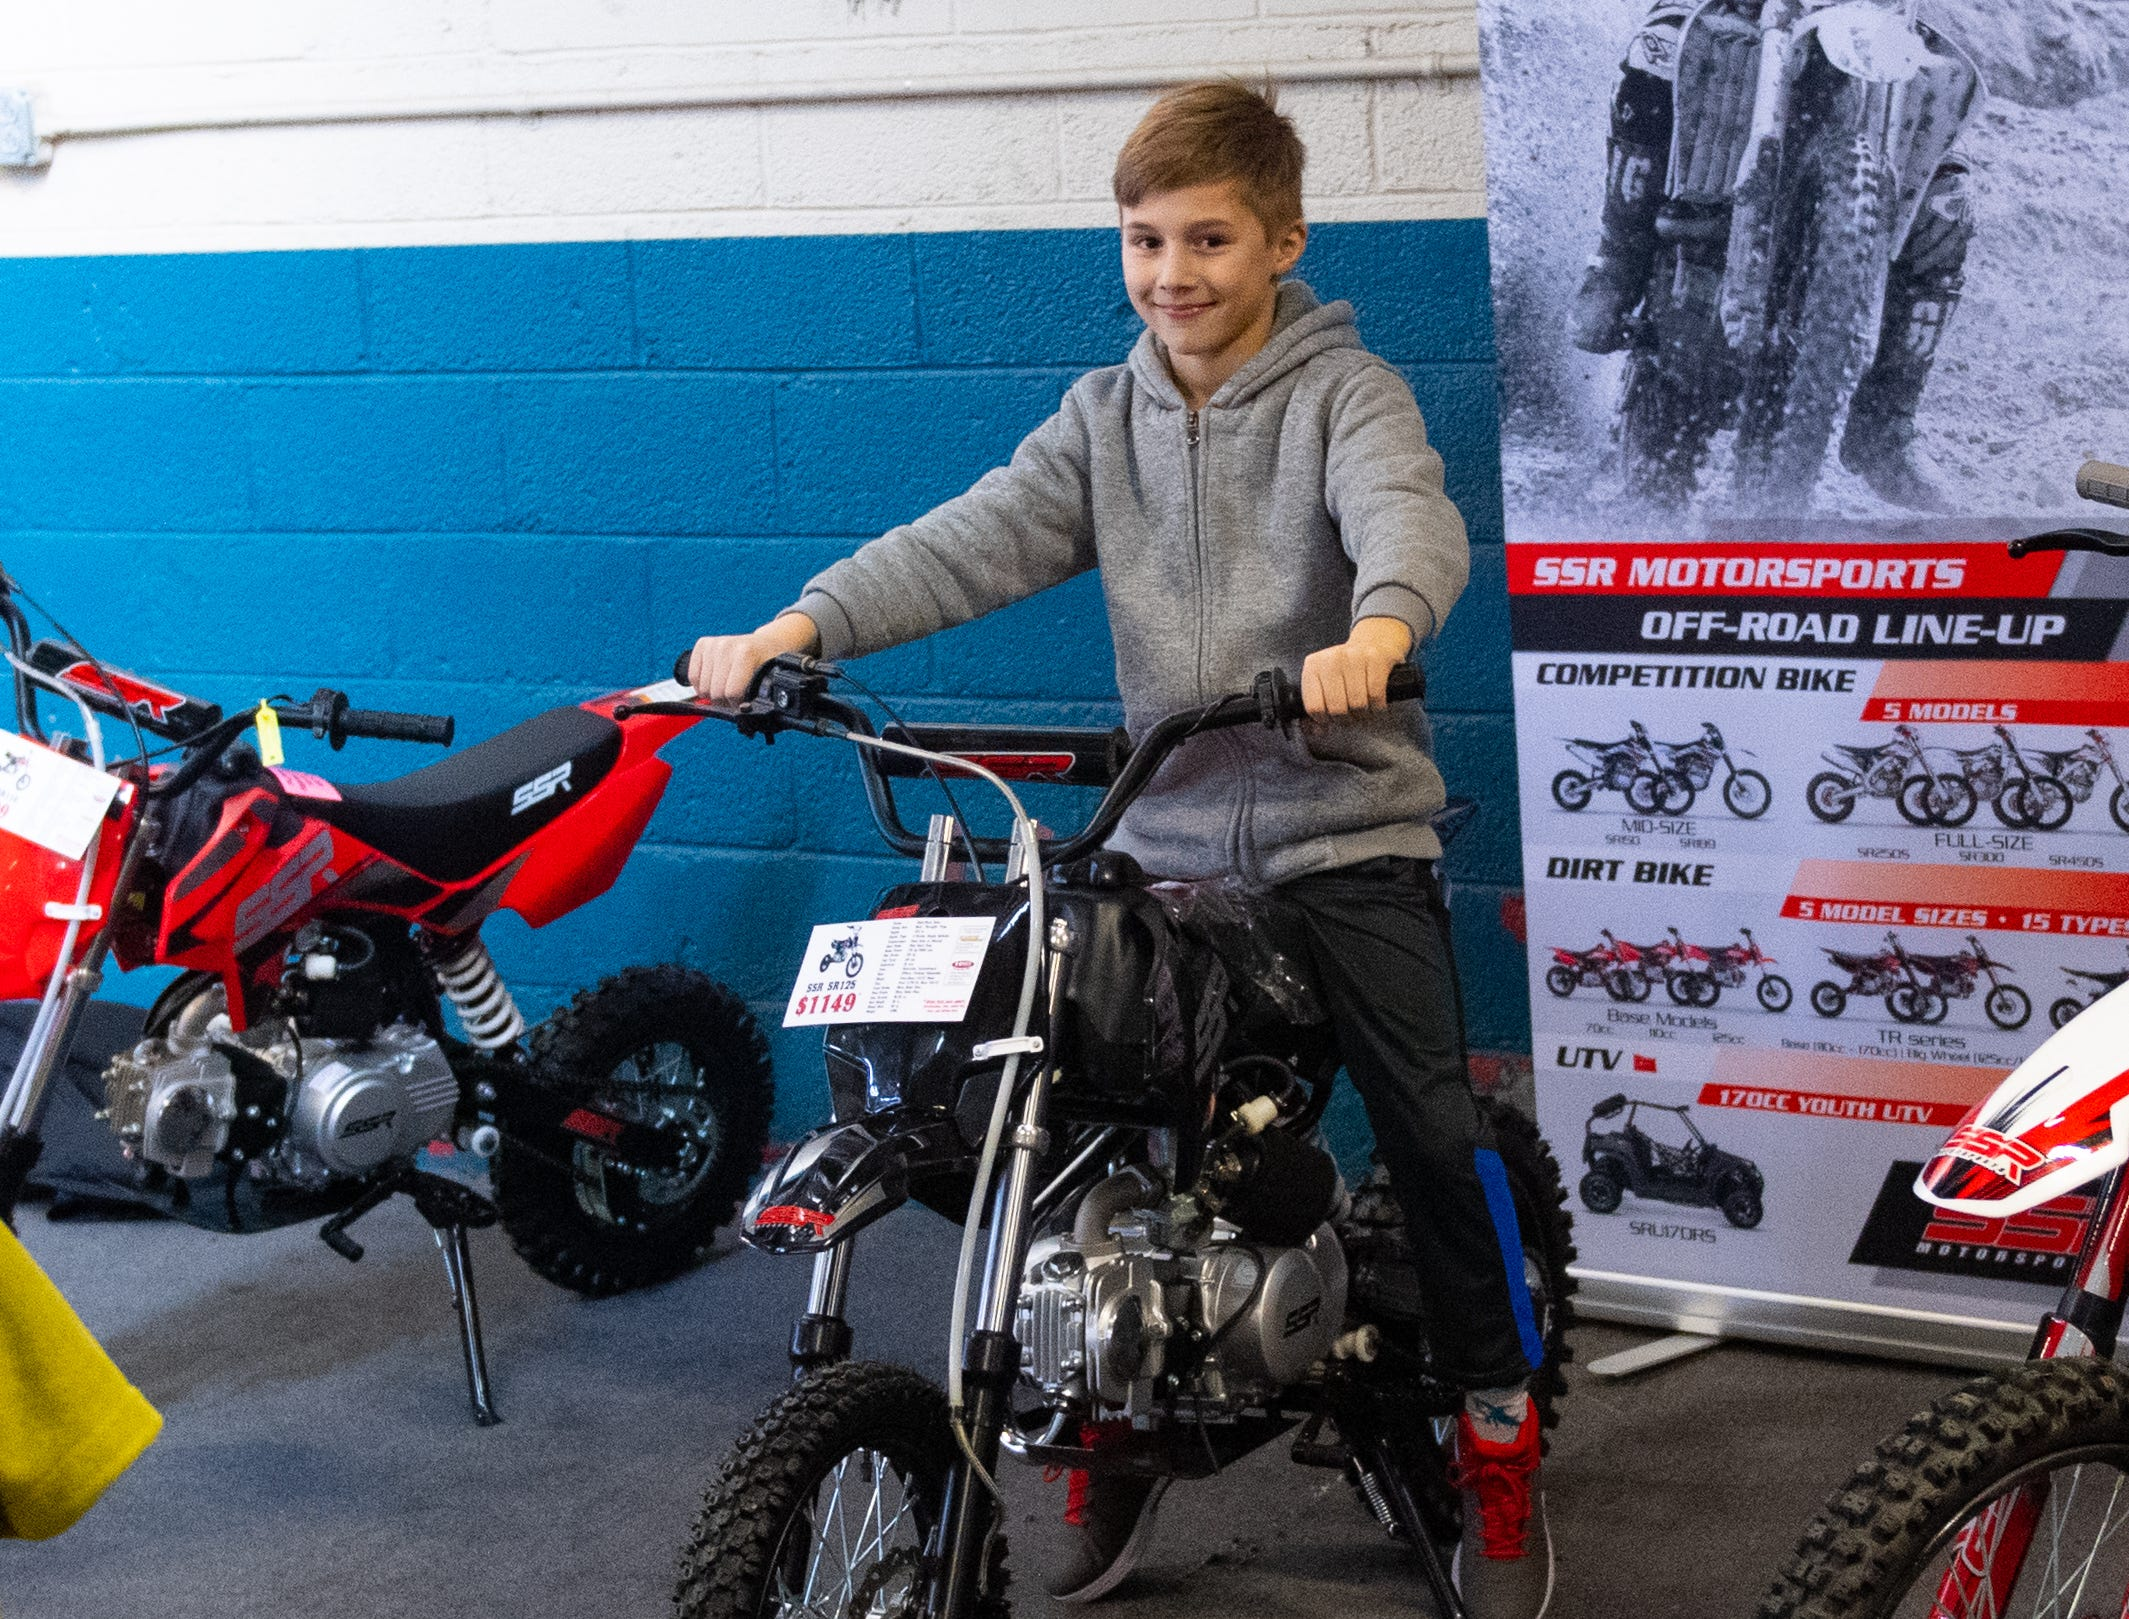 Tyler Secor tries out a dirt bike during the 2019 Pennsylvania Auto Show, Saturday, January 26, 2019 at the Pennsylvania Farm Show Complex & Expo Center. The auto show continues on Sunday from 10 a.m. to 5 p.m.